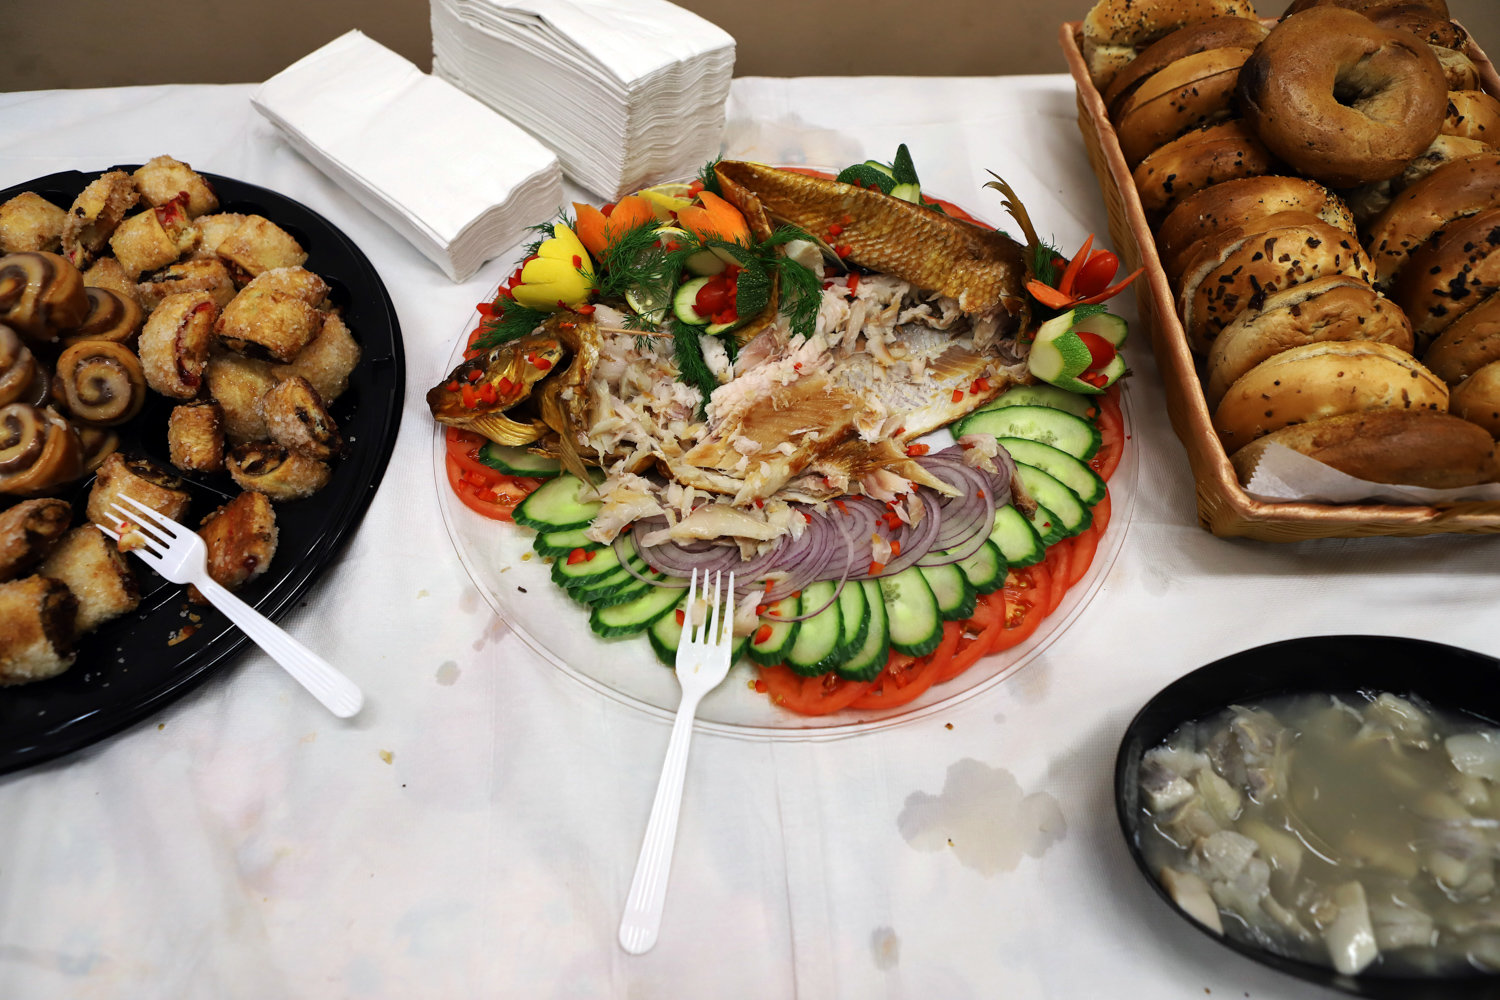 Attendees of a brunch in honor of state Sen. Alessandra Biaggi at the Van Cortlandt Jewish Center were able to feast on fish, bagels and rugelach, among other things.